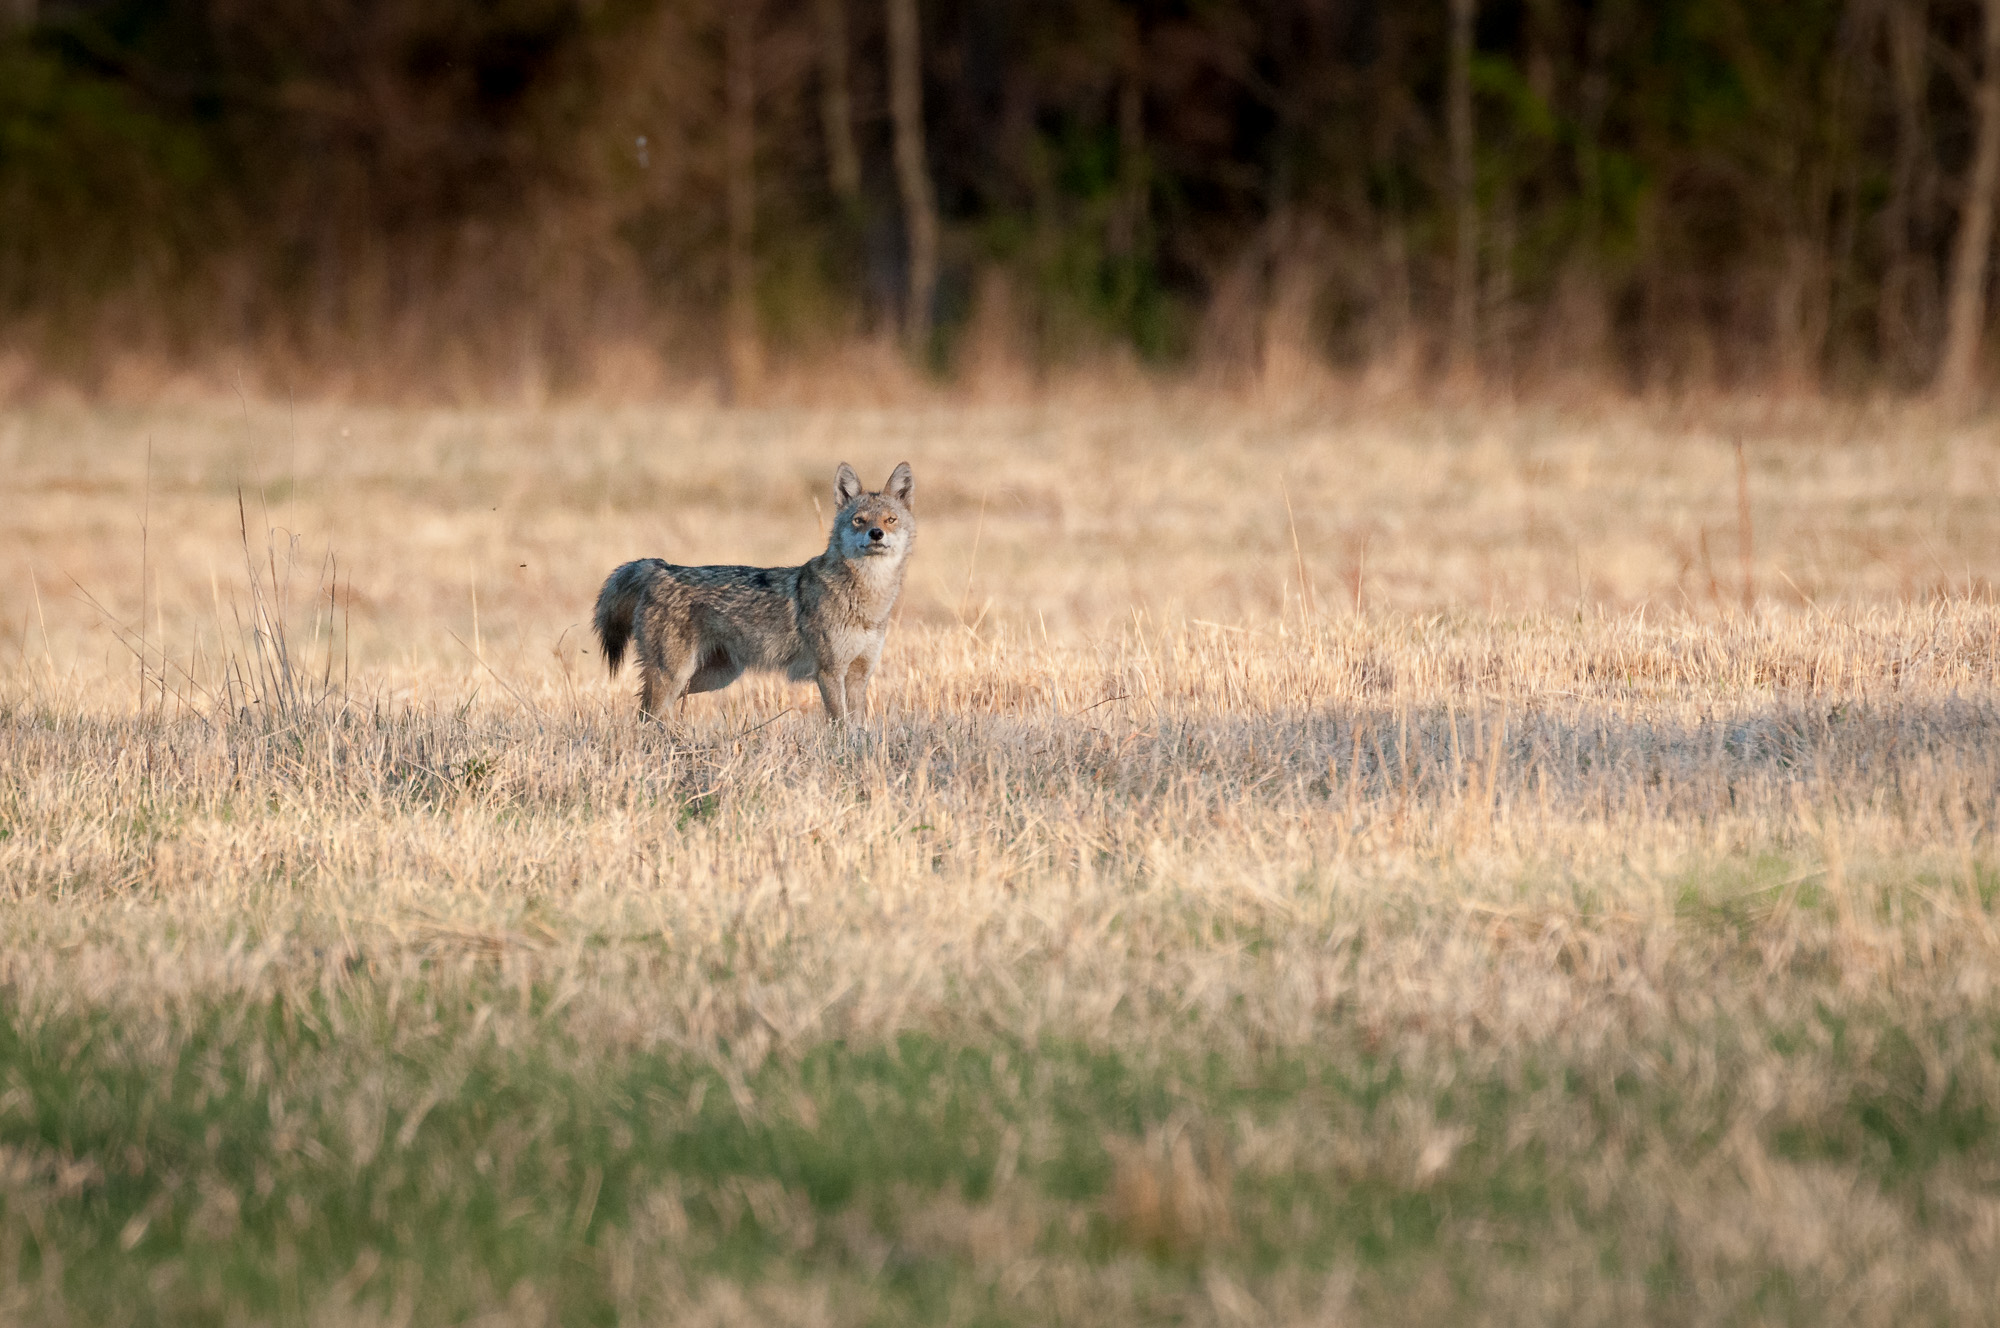 Curious Coyote, watching me and sniffing